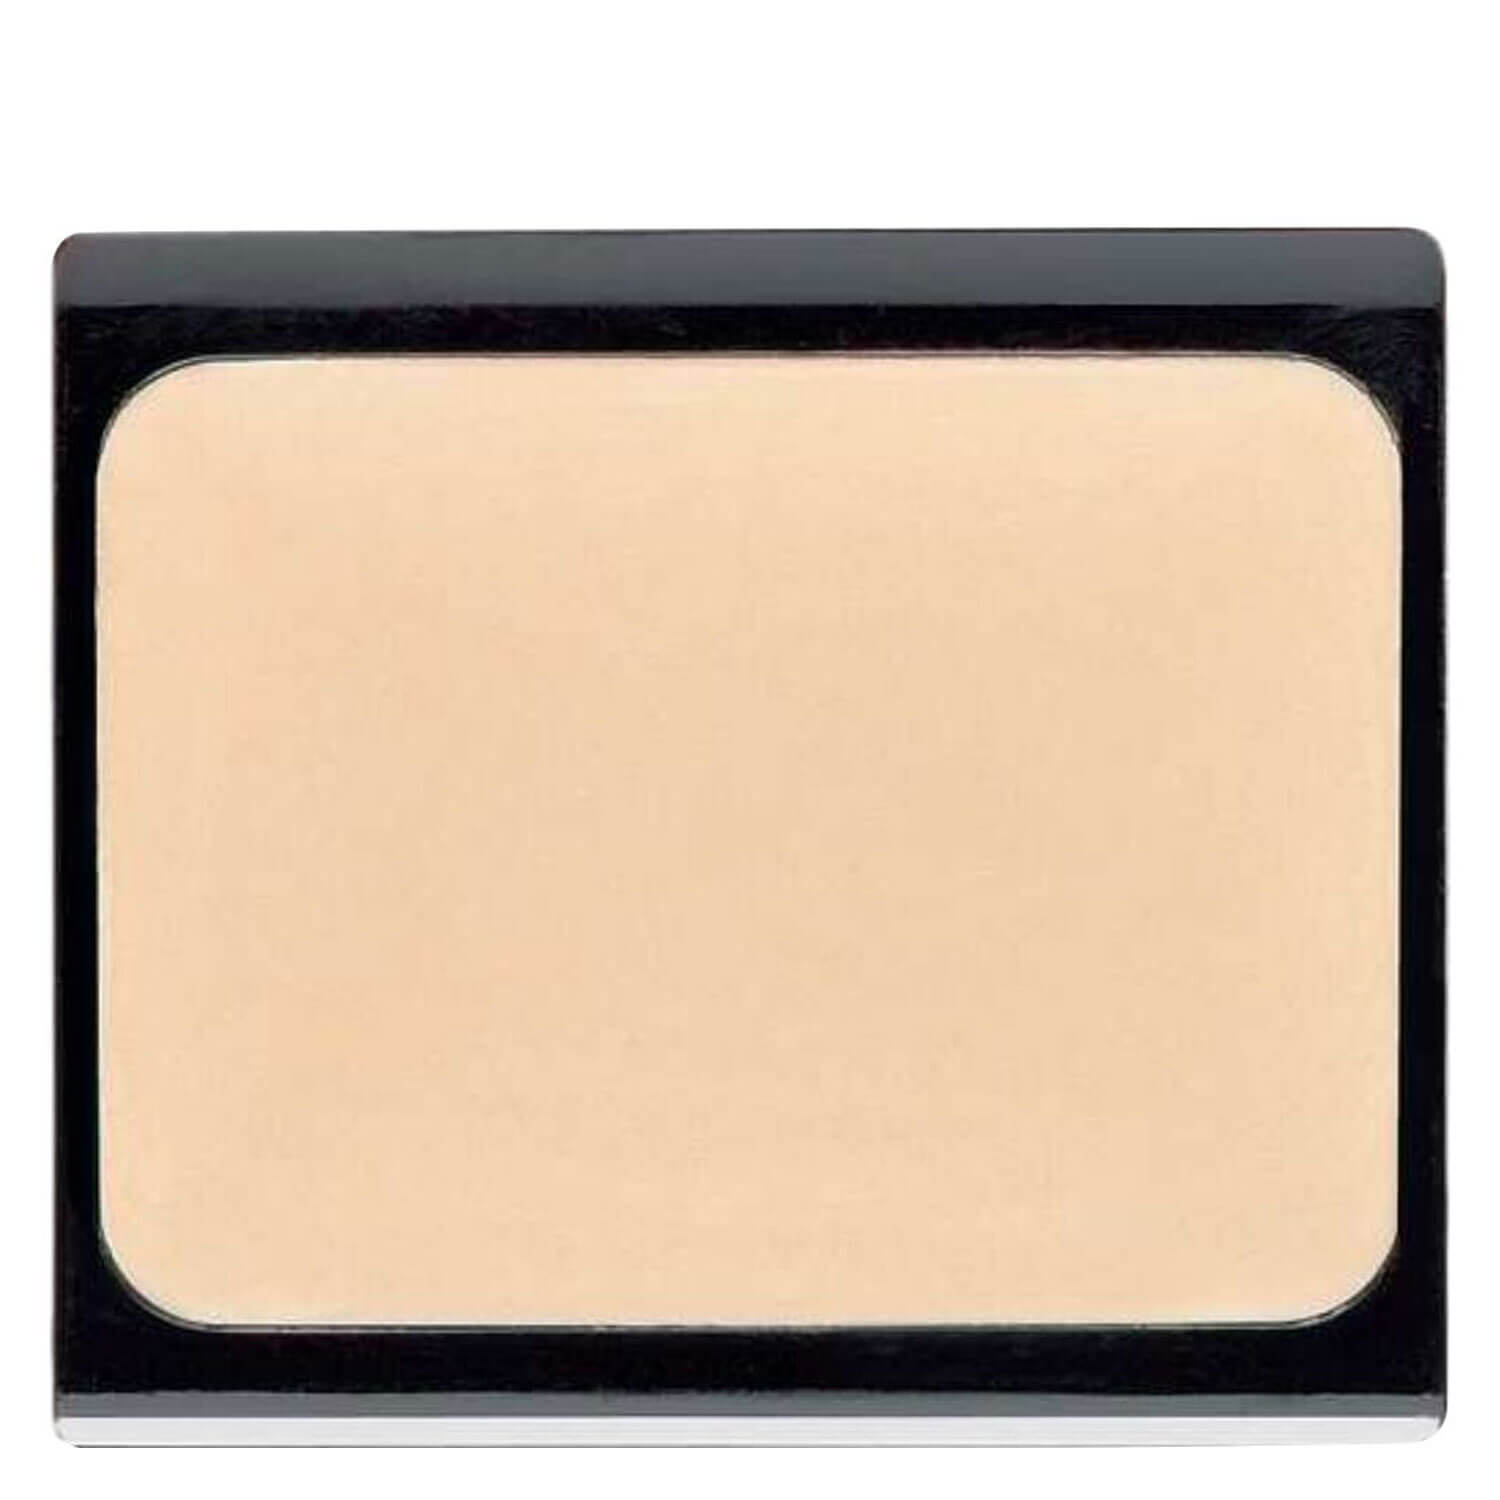 Camouflage Cream - Summer Apricot 15